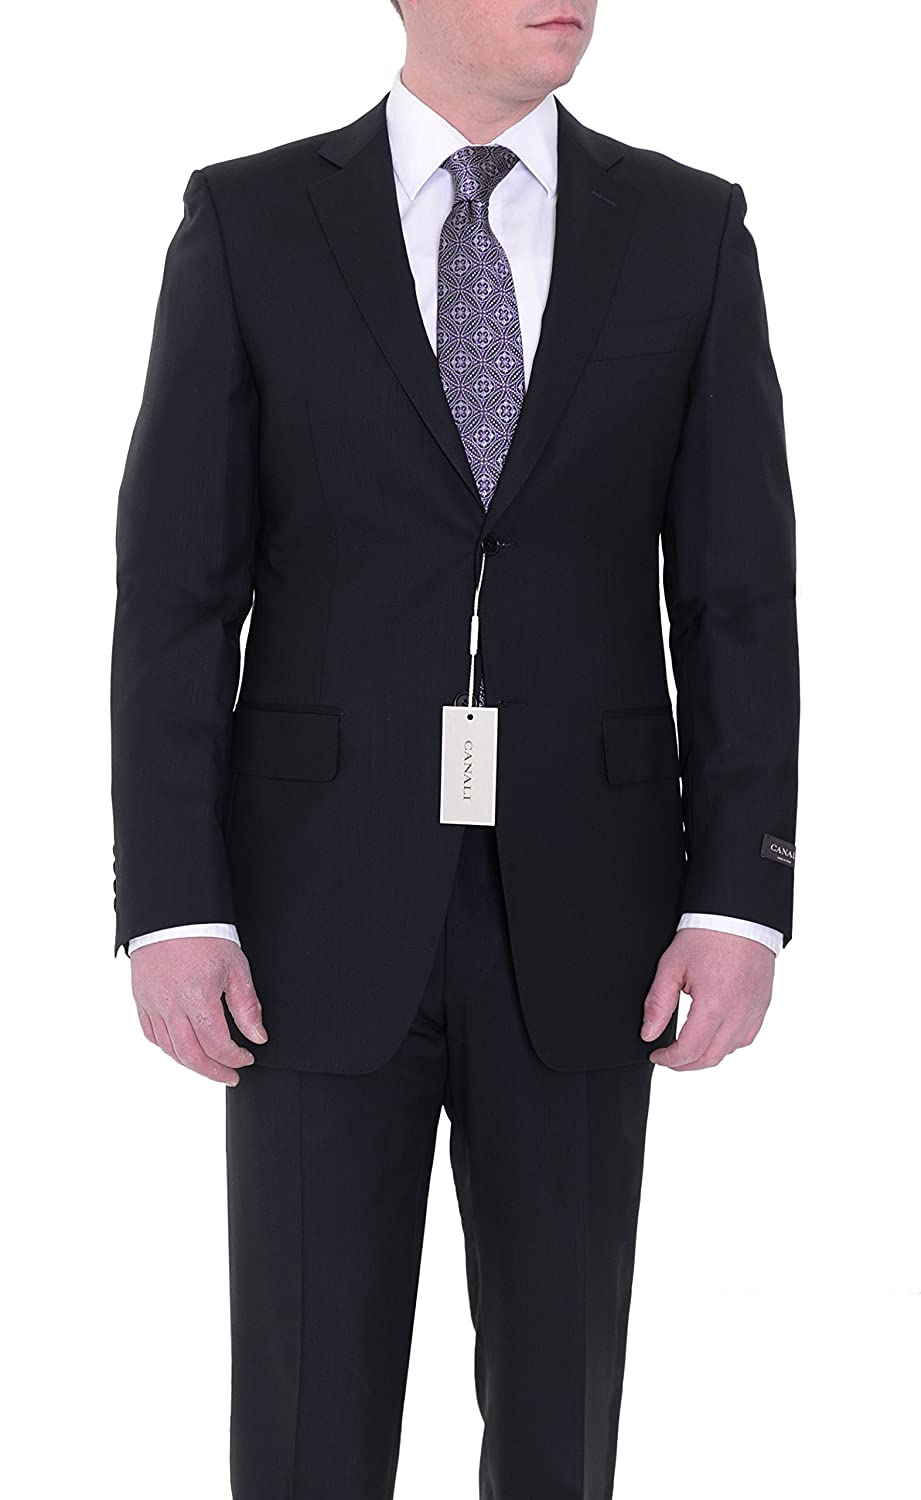 639abc6396e Canali Drop 8 Slim Fit 38L 48T Black Striped Two Button Wool Suit at Amazon  Men's Clothing store: